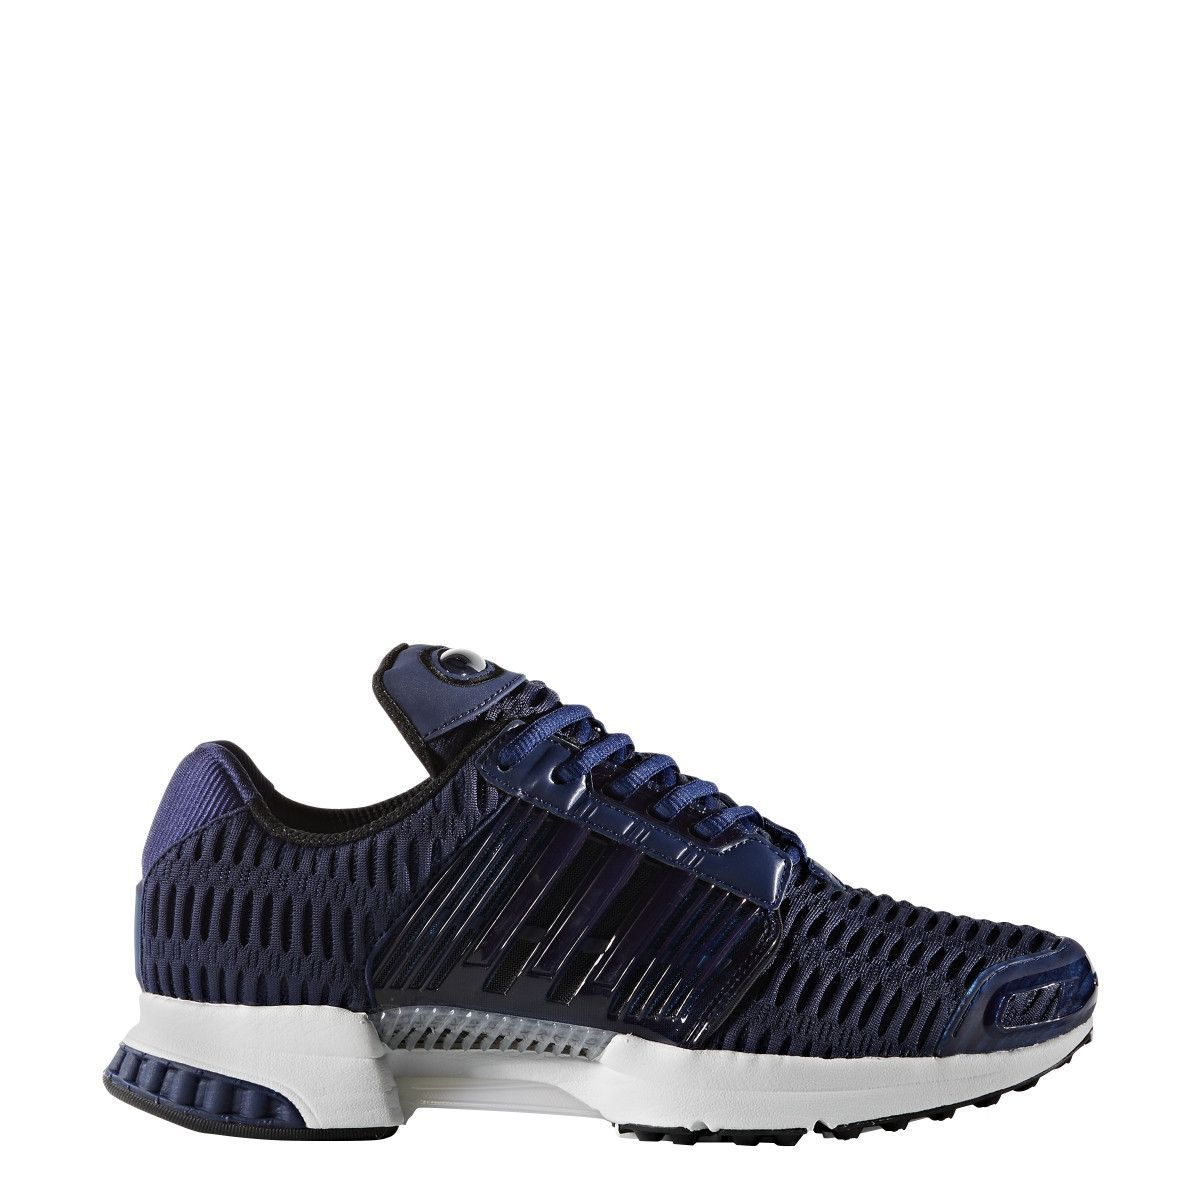 newest d8d20 88aaa ADIDAS CLIMA COOL 1 MENS SNEAKERS